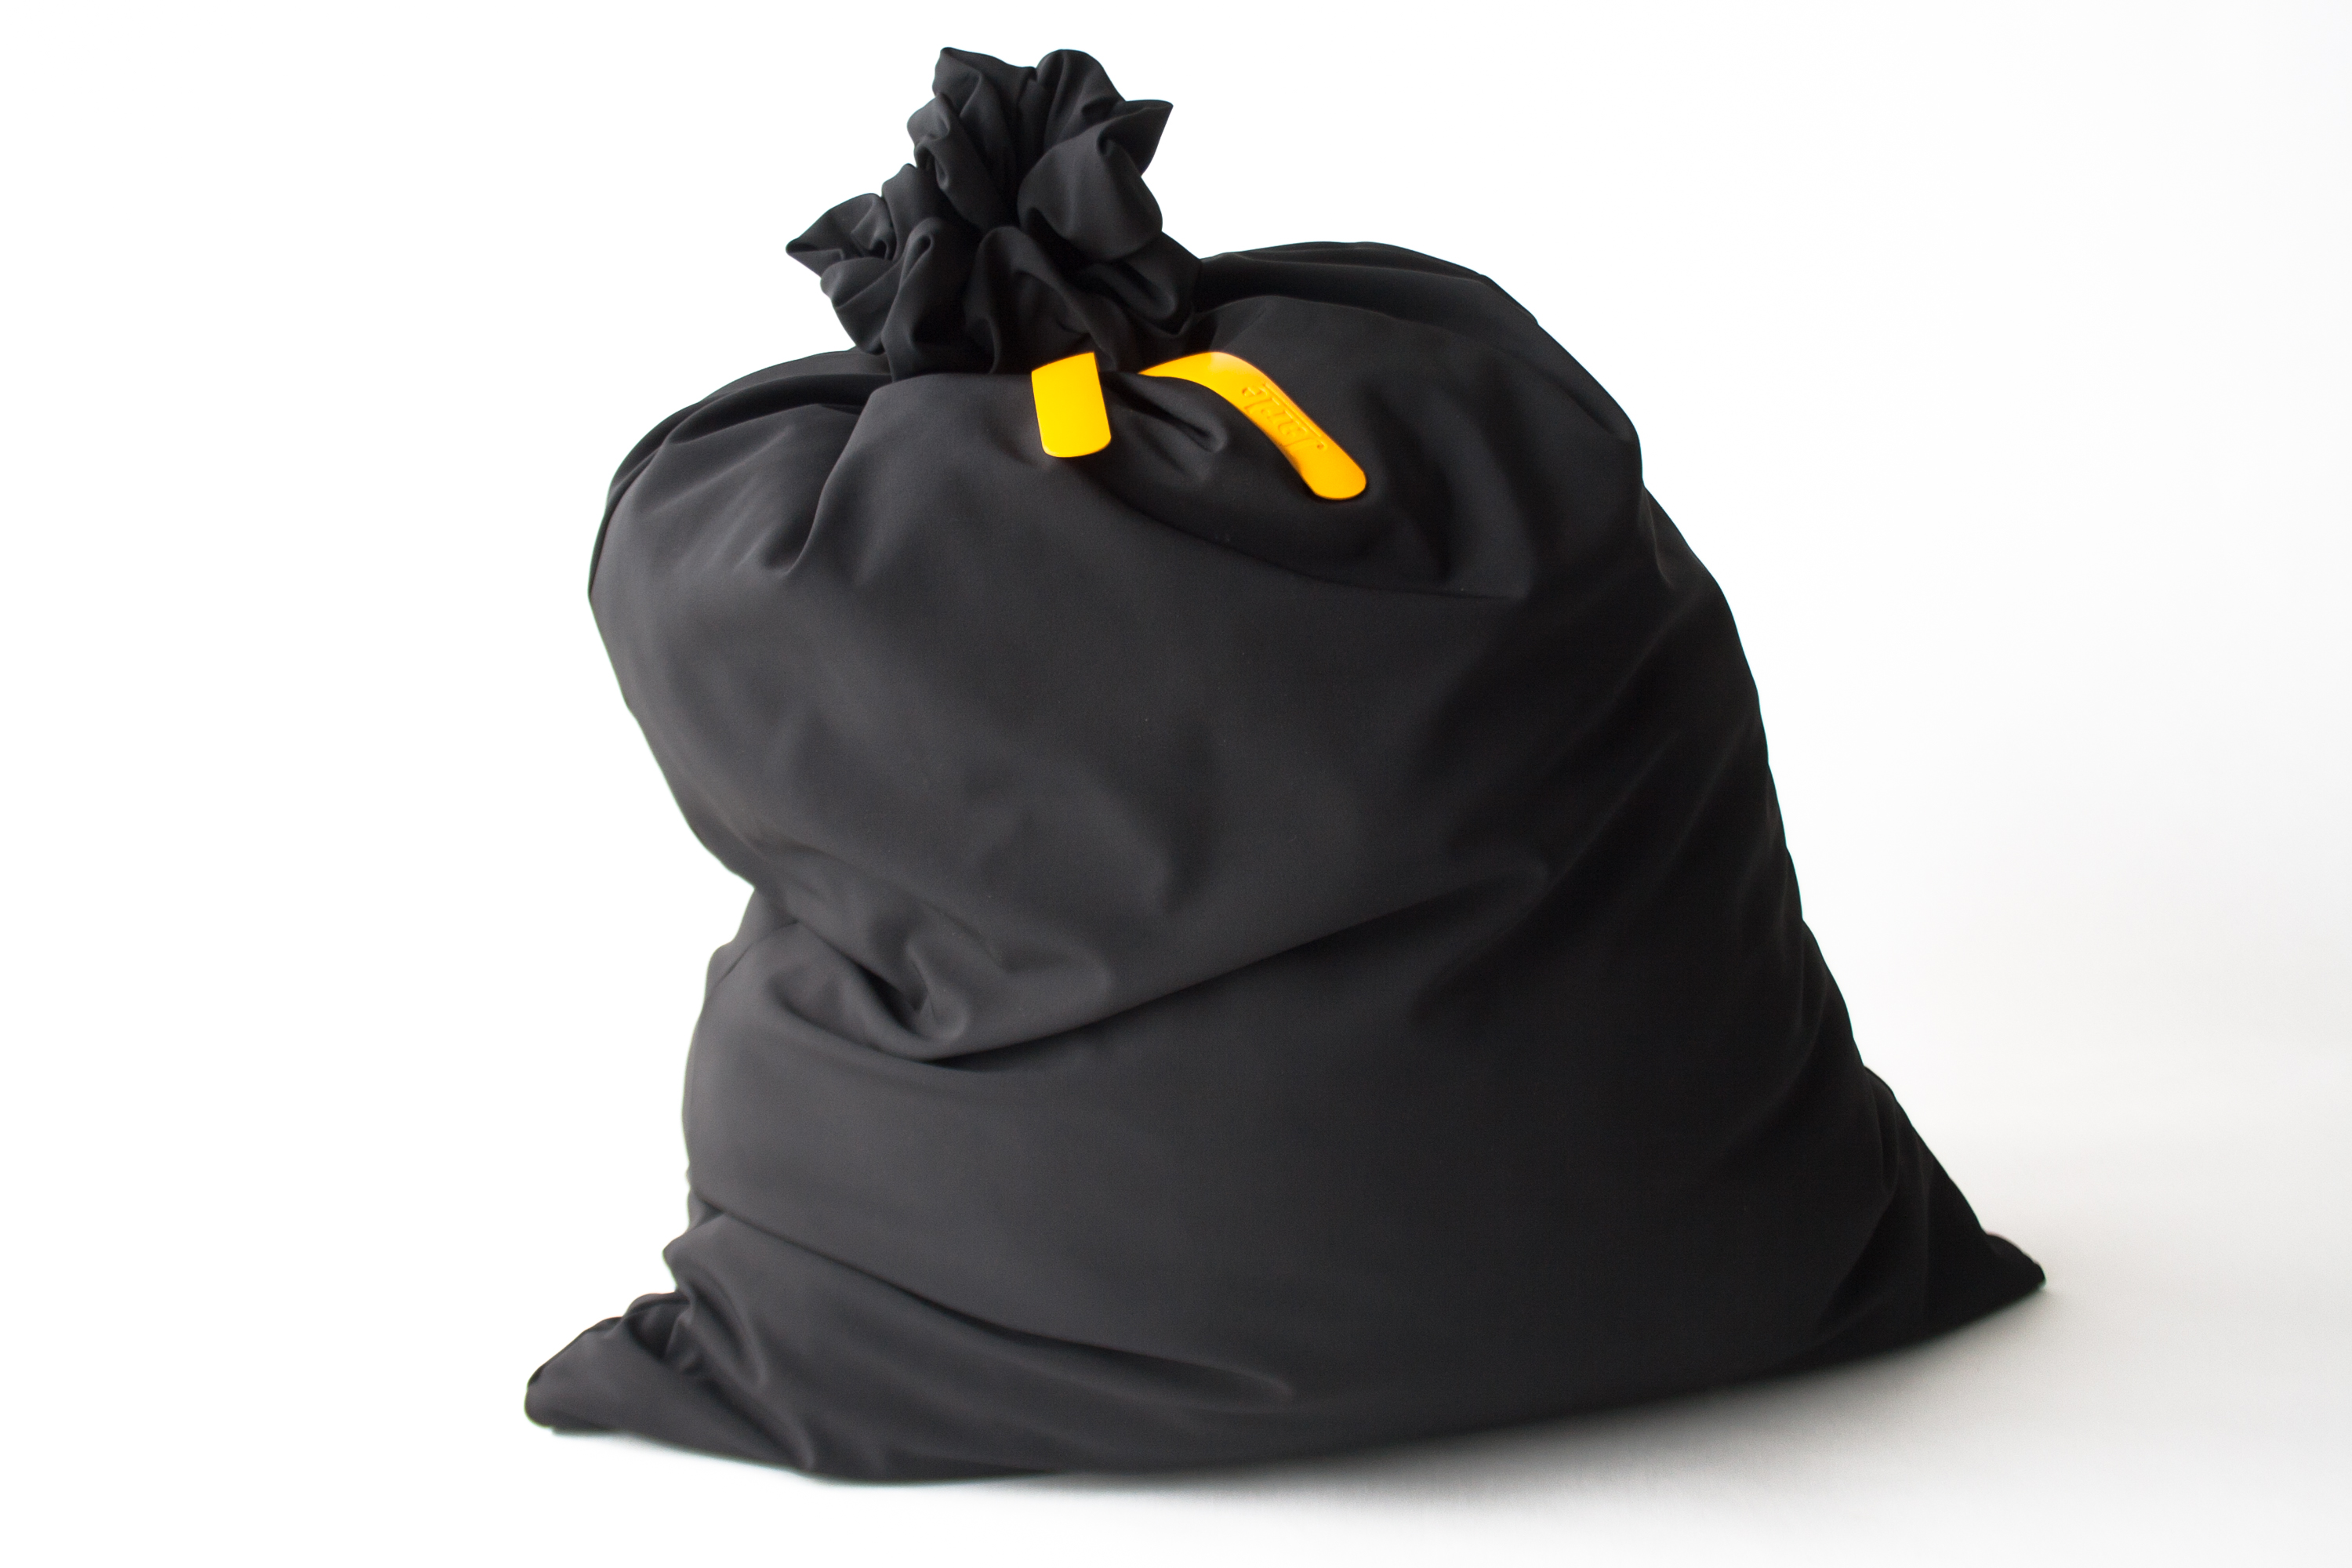 Garbage Pillow, a pillow that looks like a garbage bag. Comfortable trash. Designed by Jarle Veldman